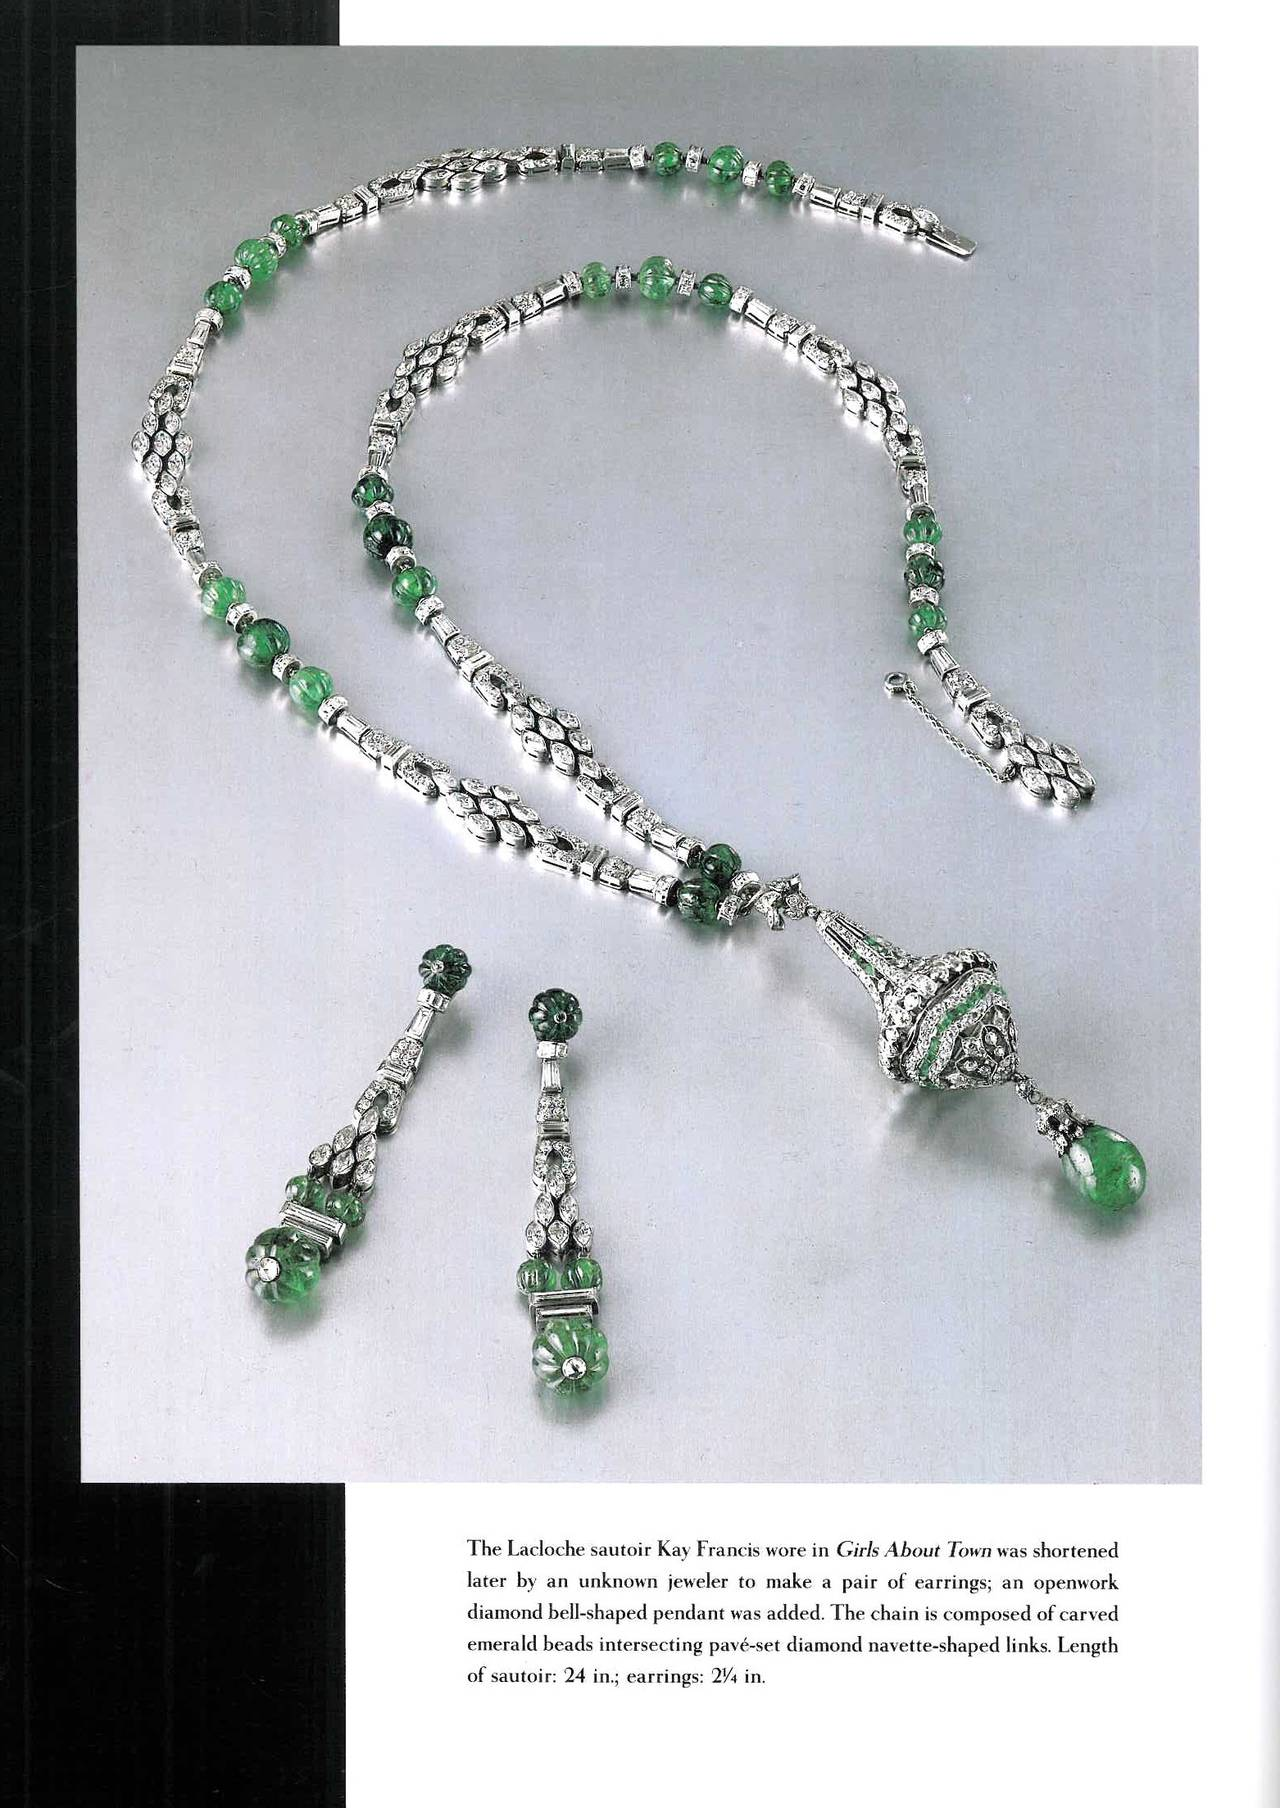 Women's Book of HOLLYWOOD JEWELS - Movies, Jewelry, Stars For Sale